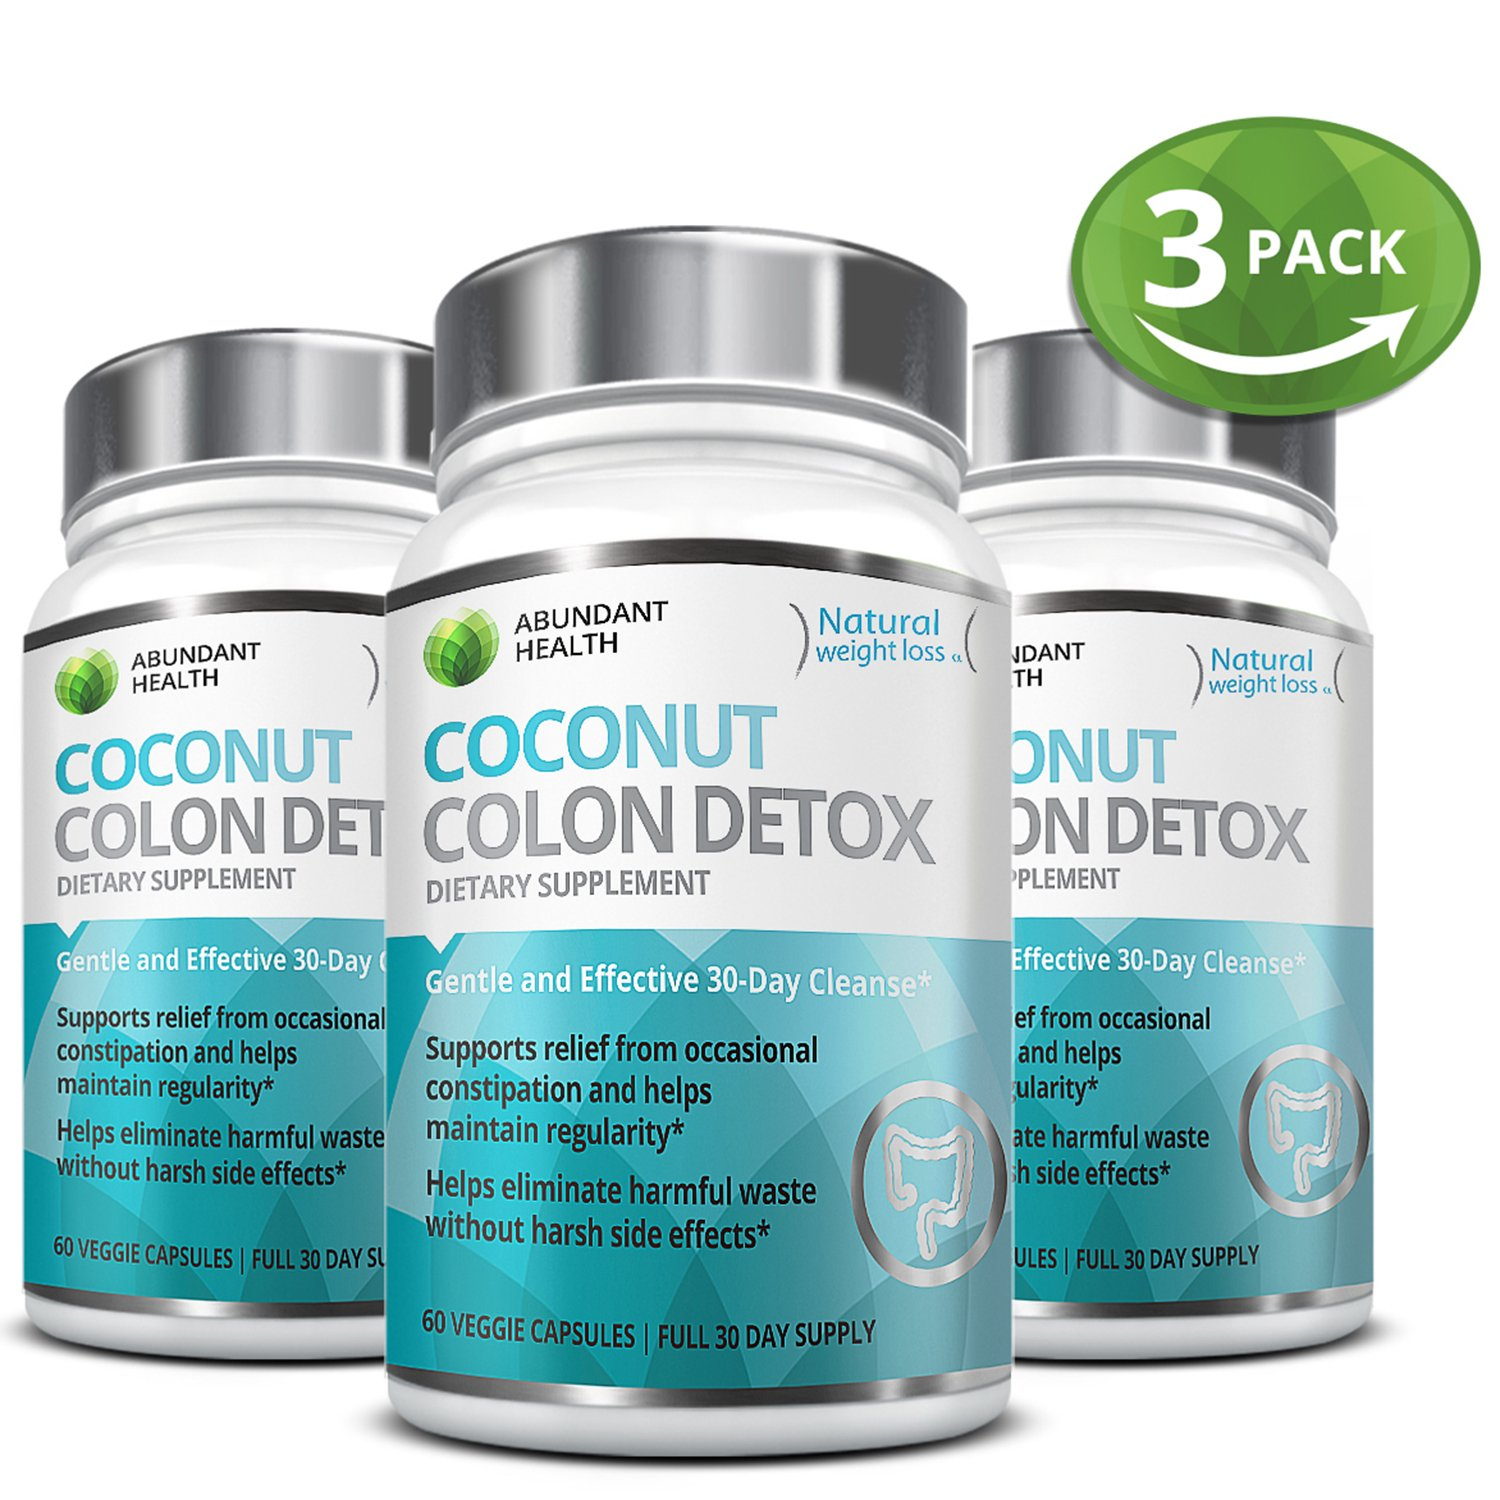 3 Bottle Bundle - Save an Extra 10% - Gentle Colon Detox Cleanse HELPS Reduce Bloating Constipation and Weight Loss 25 Day Quick Cleanse